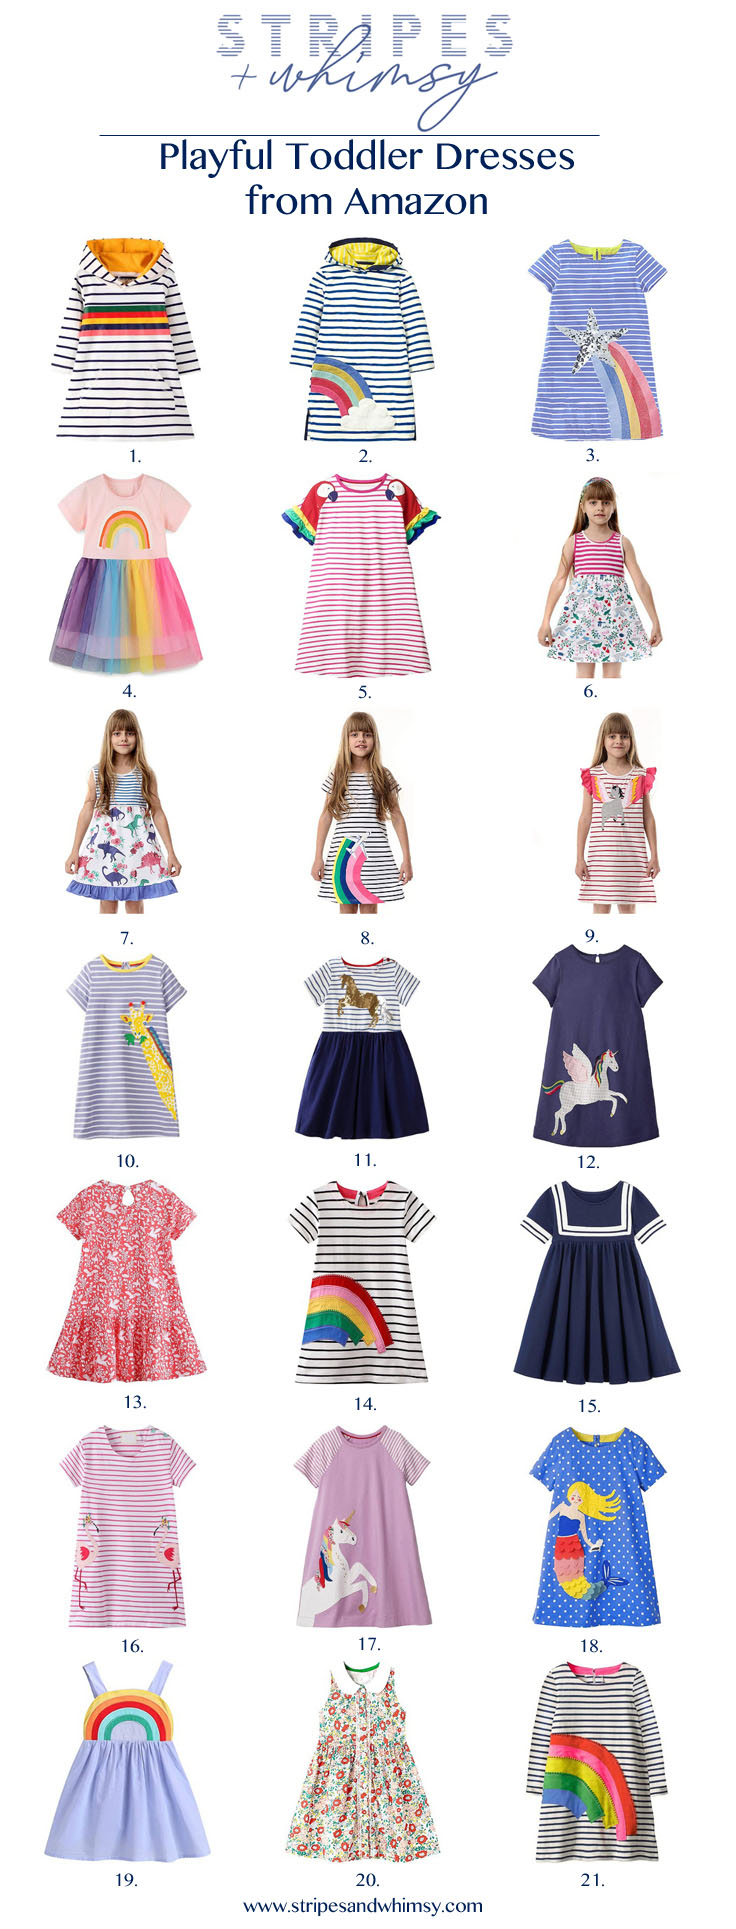 Playful Toddler Dresses from Amazon